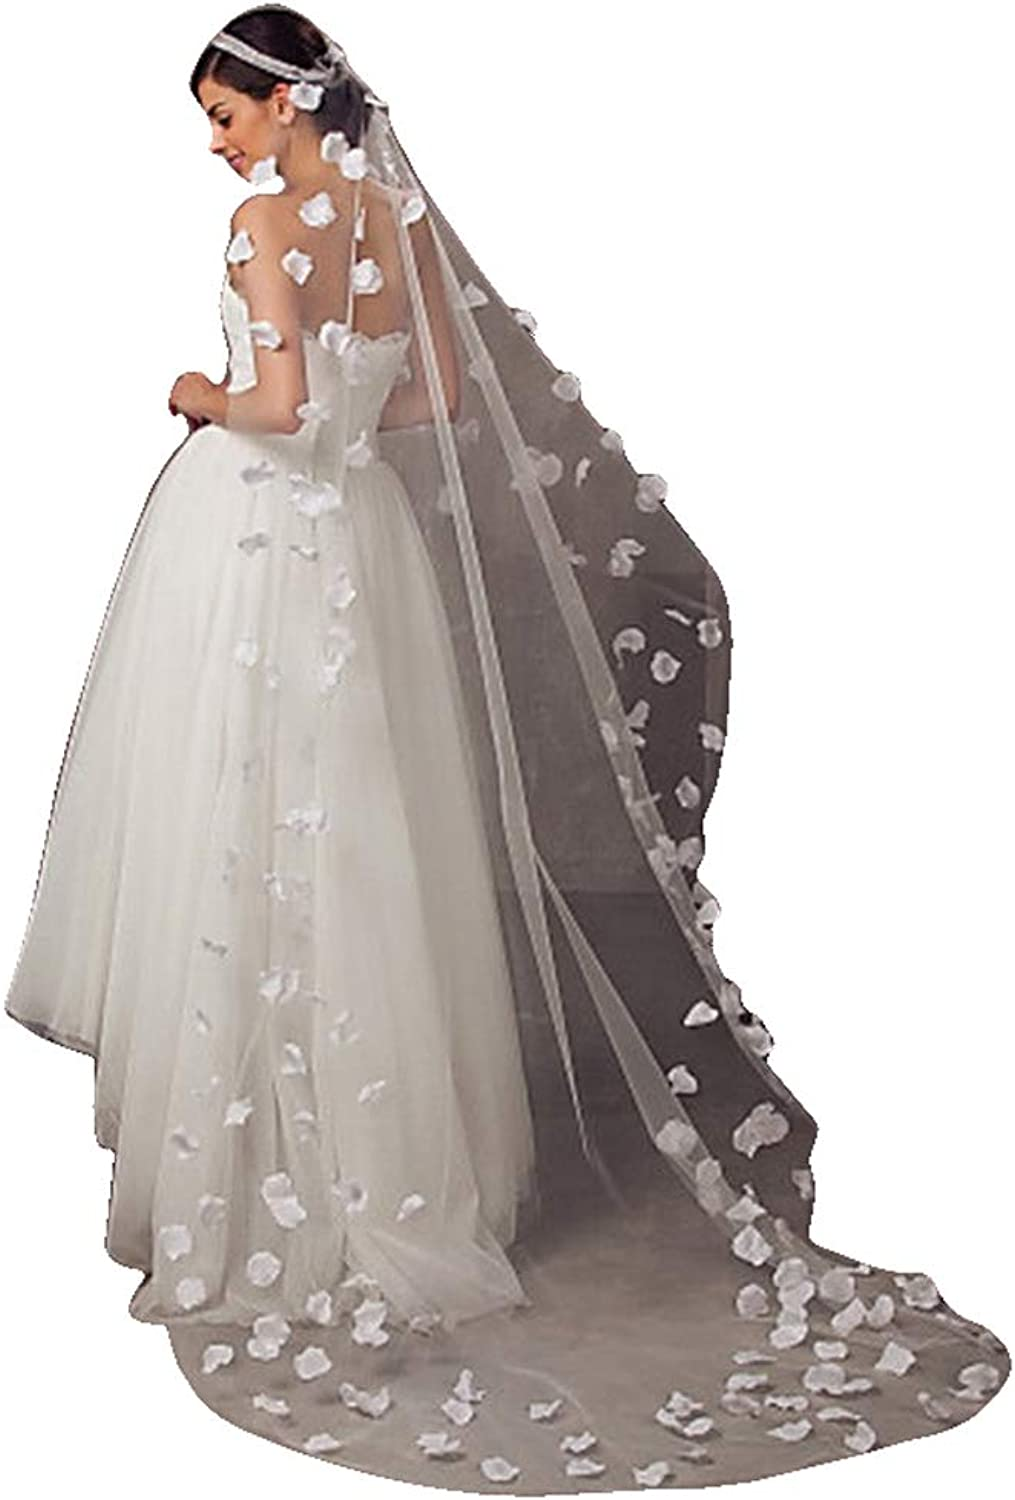 Fenghauvip Flowers and Peals Wedding Veil Cathedral Length 1 T 5 M Veils for Bridal